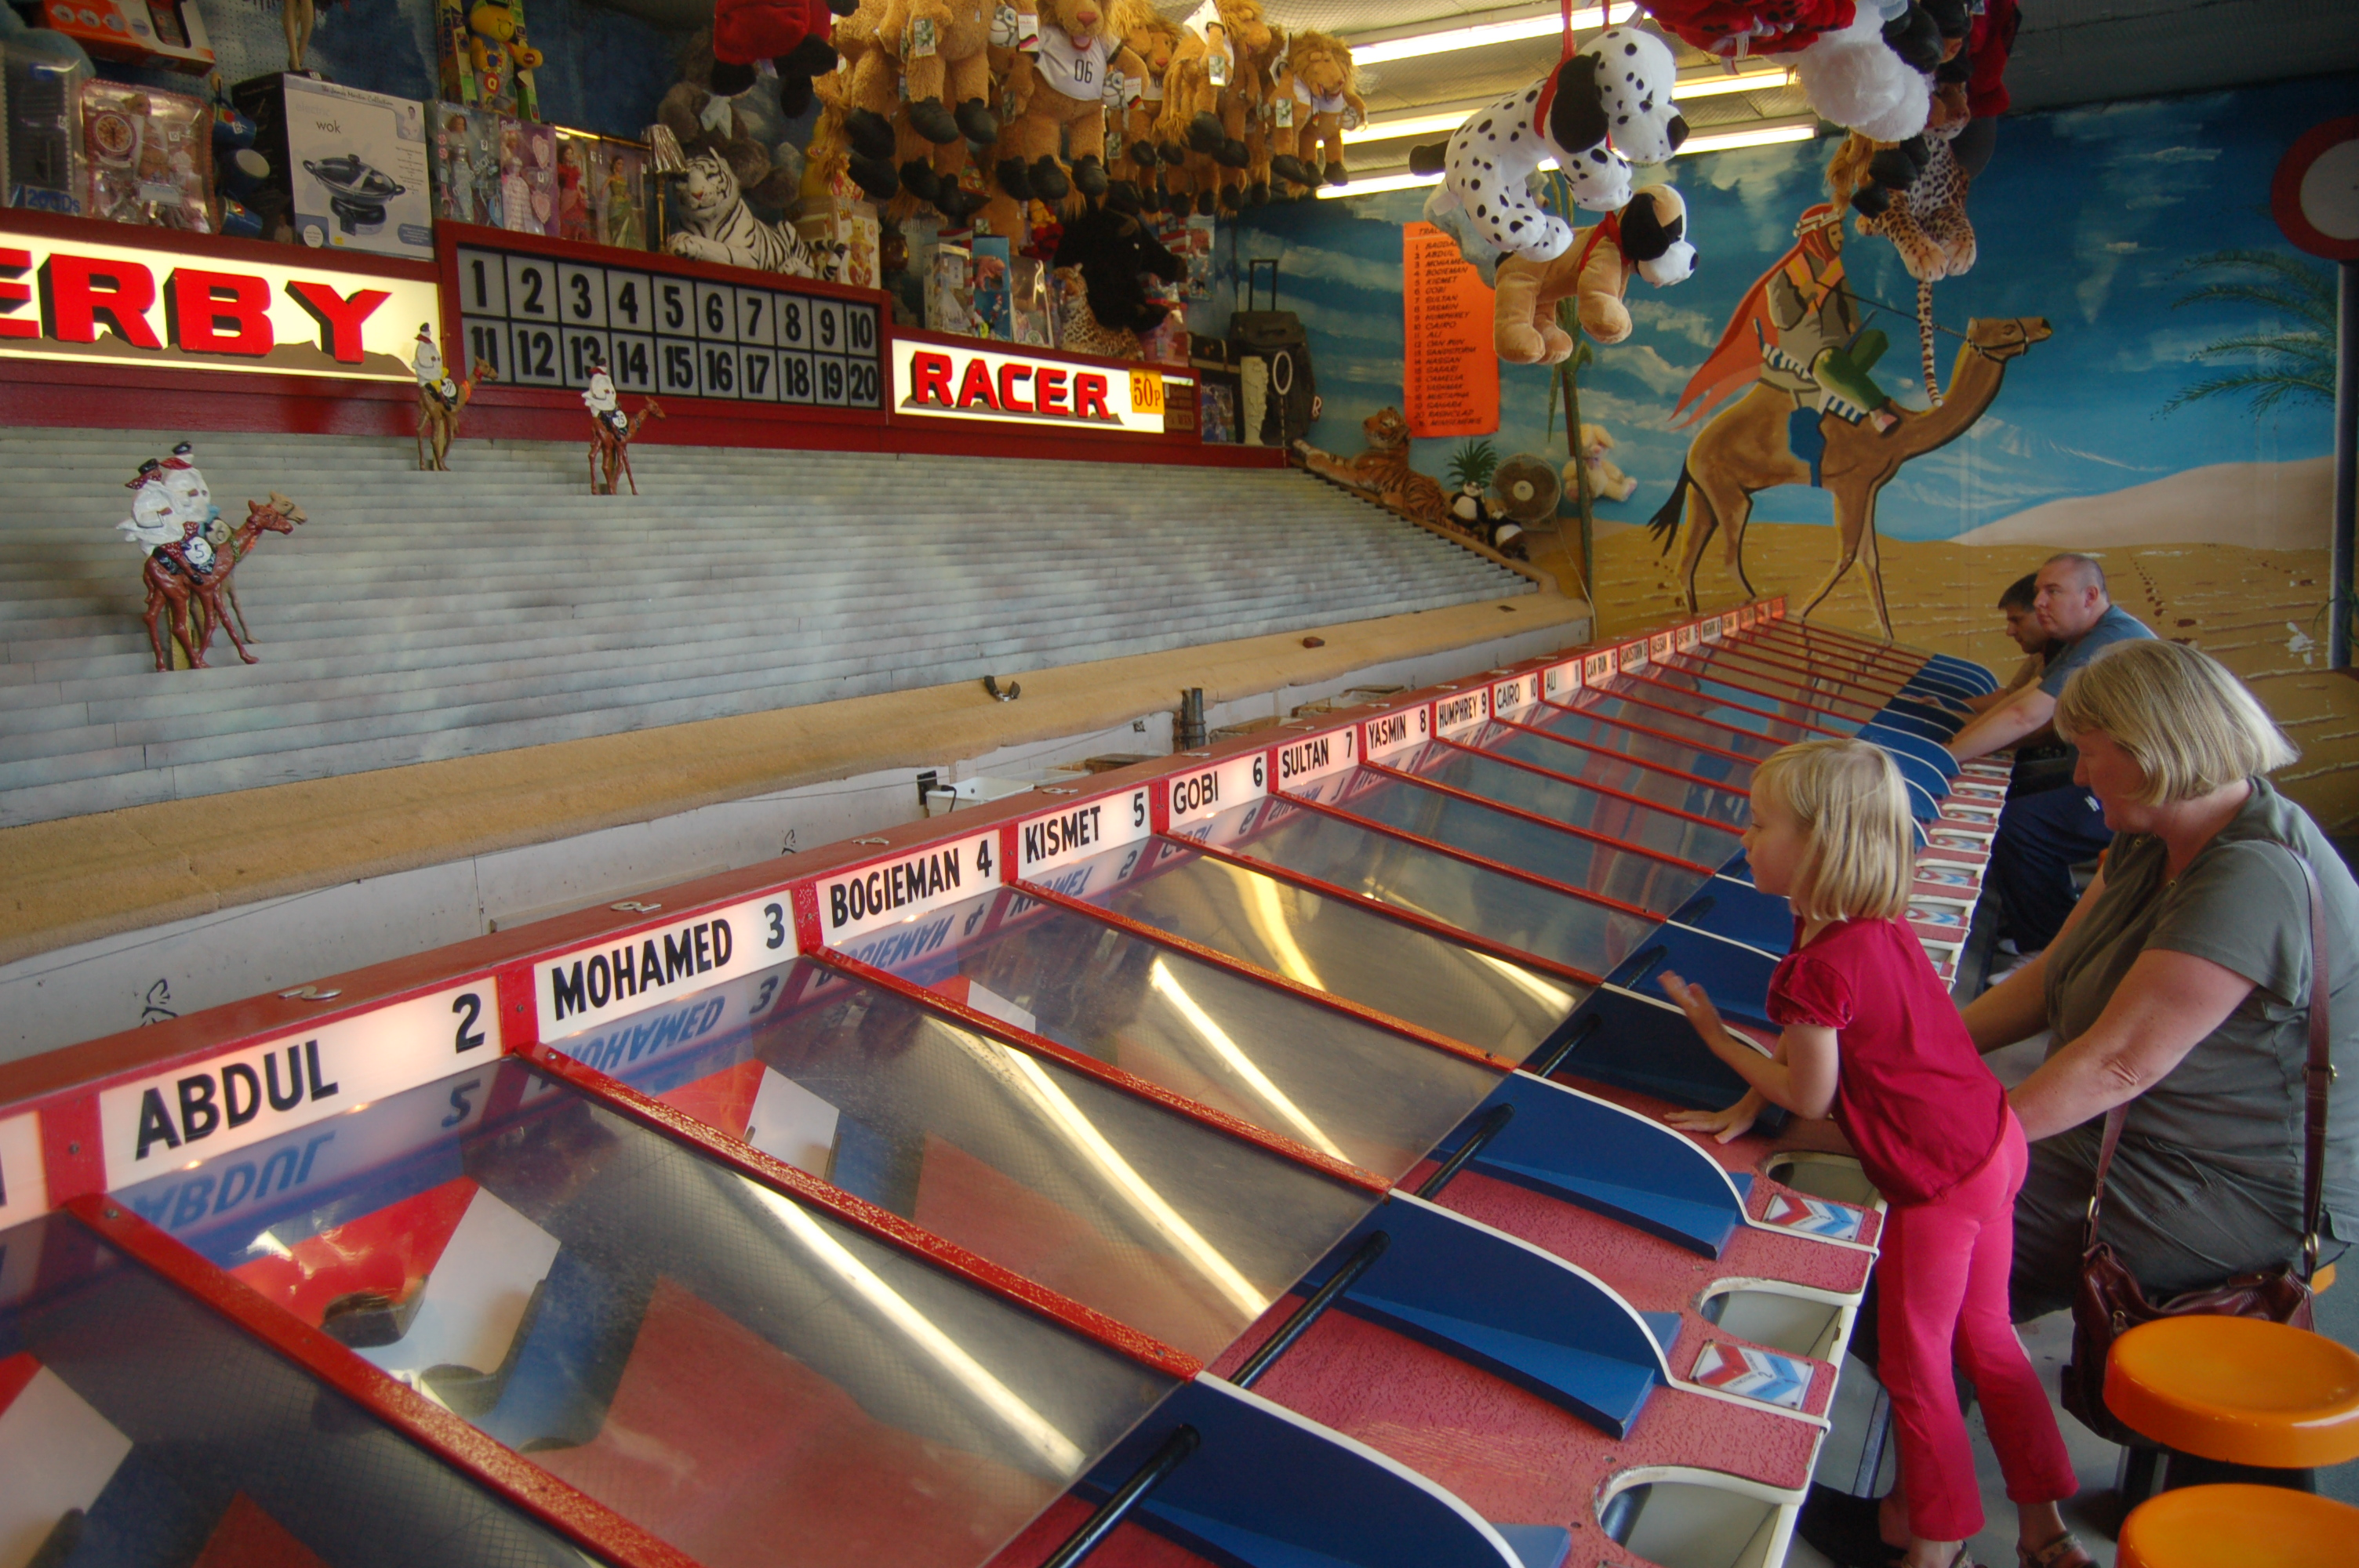 Rebekah playing the camel derby